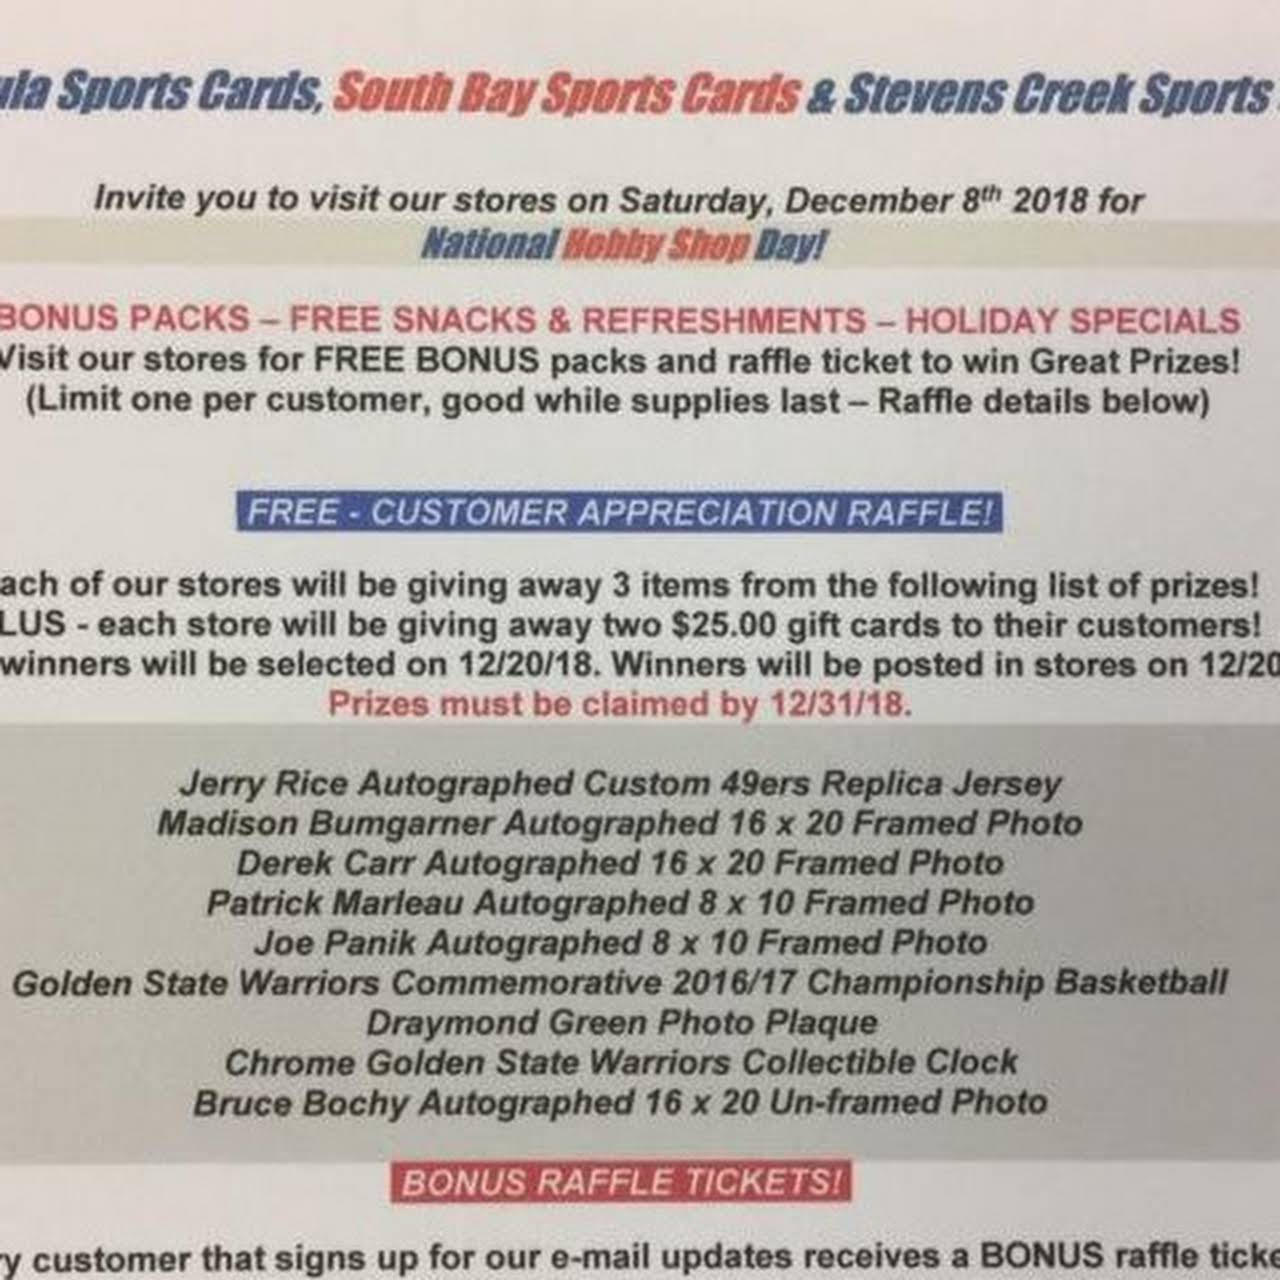 South Bay Sports Cards Sports Card Store In Sunnyvale